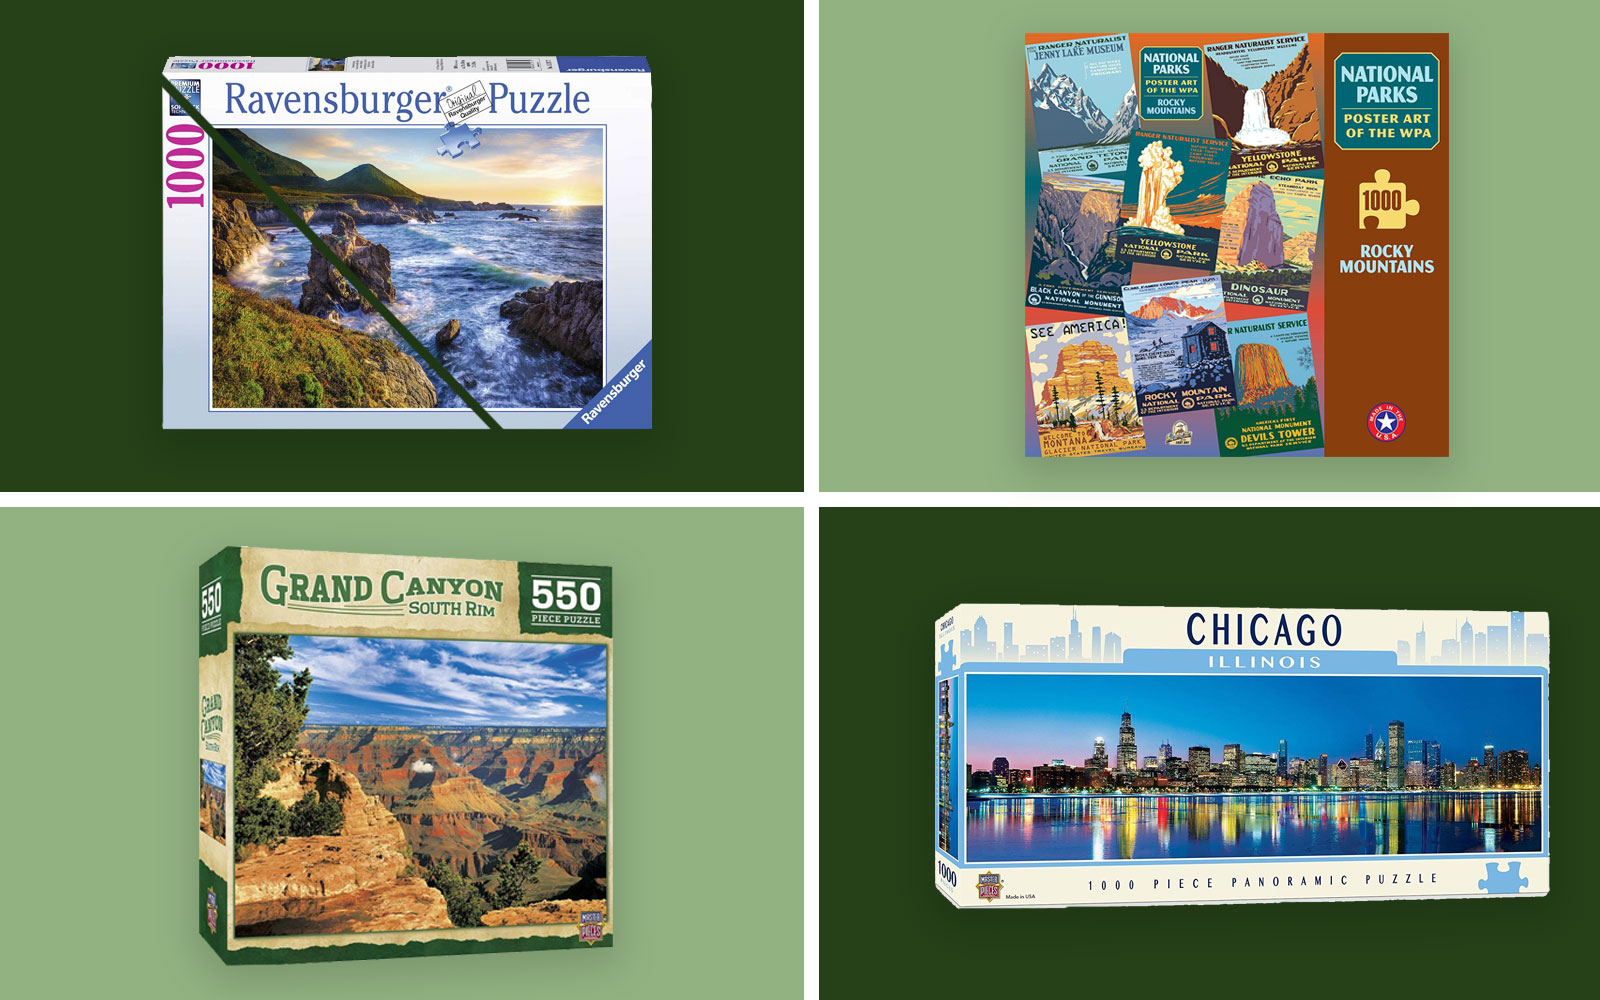 Four travel-themed, puzzles